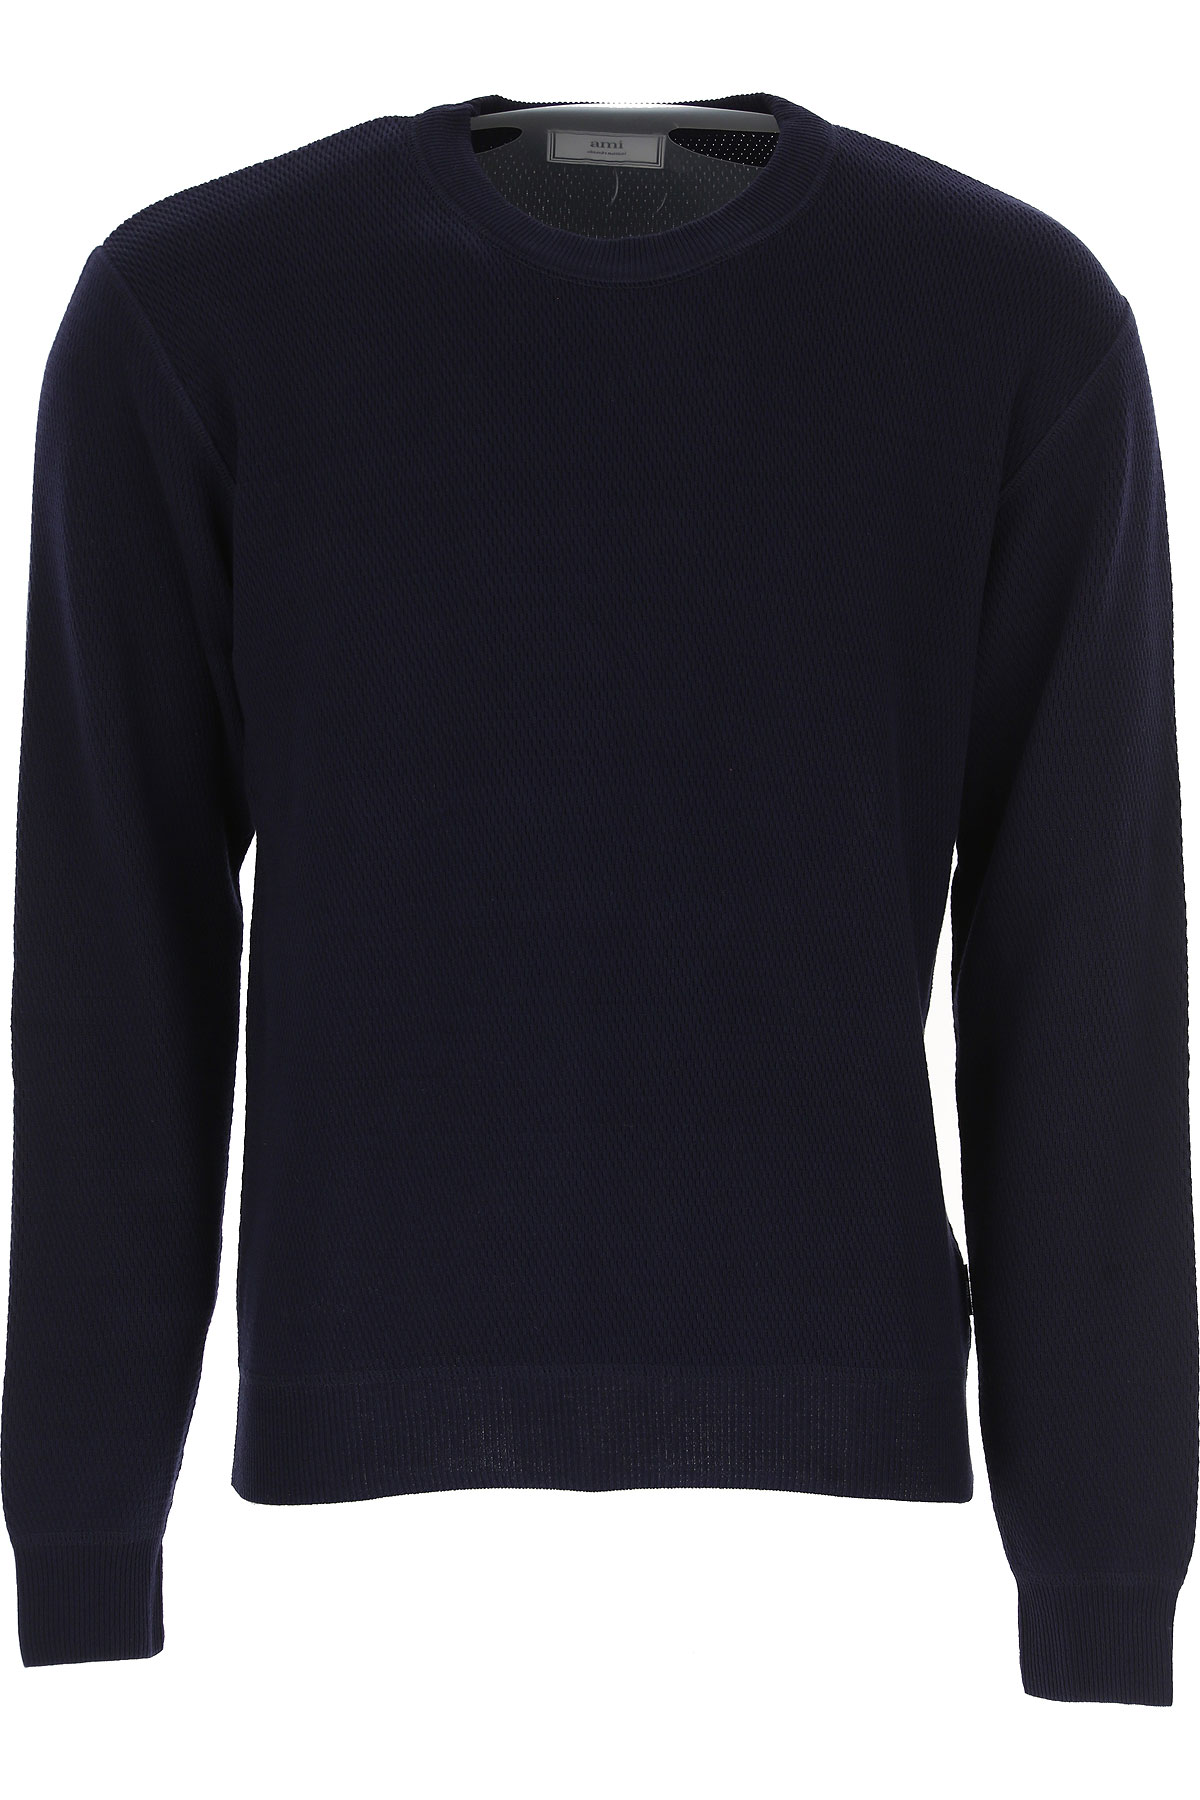 Image of Ami Sweater for Men Jumper, Ink Blue, Cotton, 2017, L S